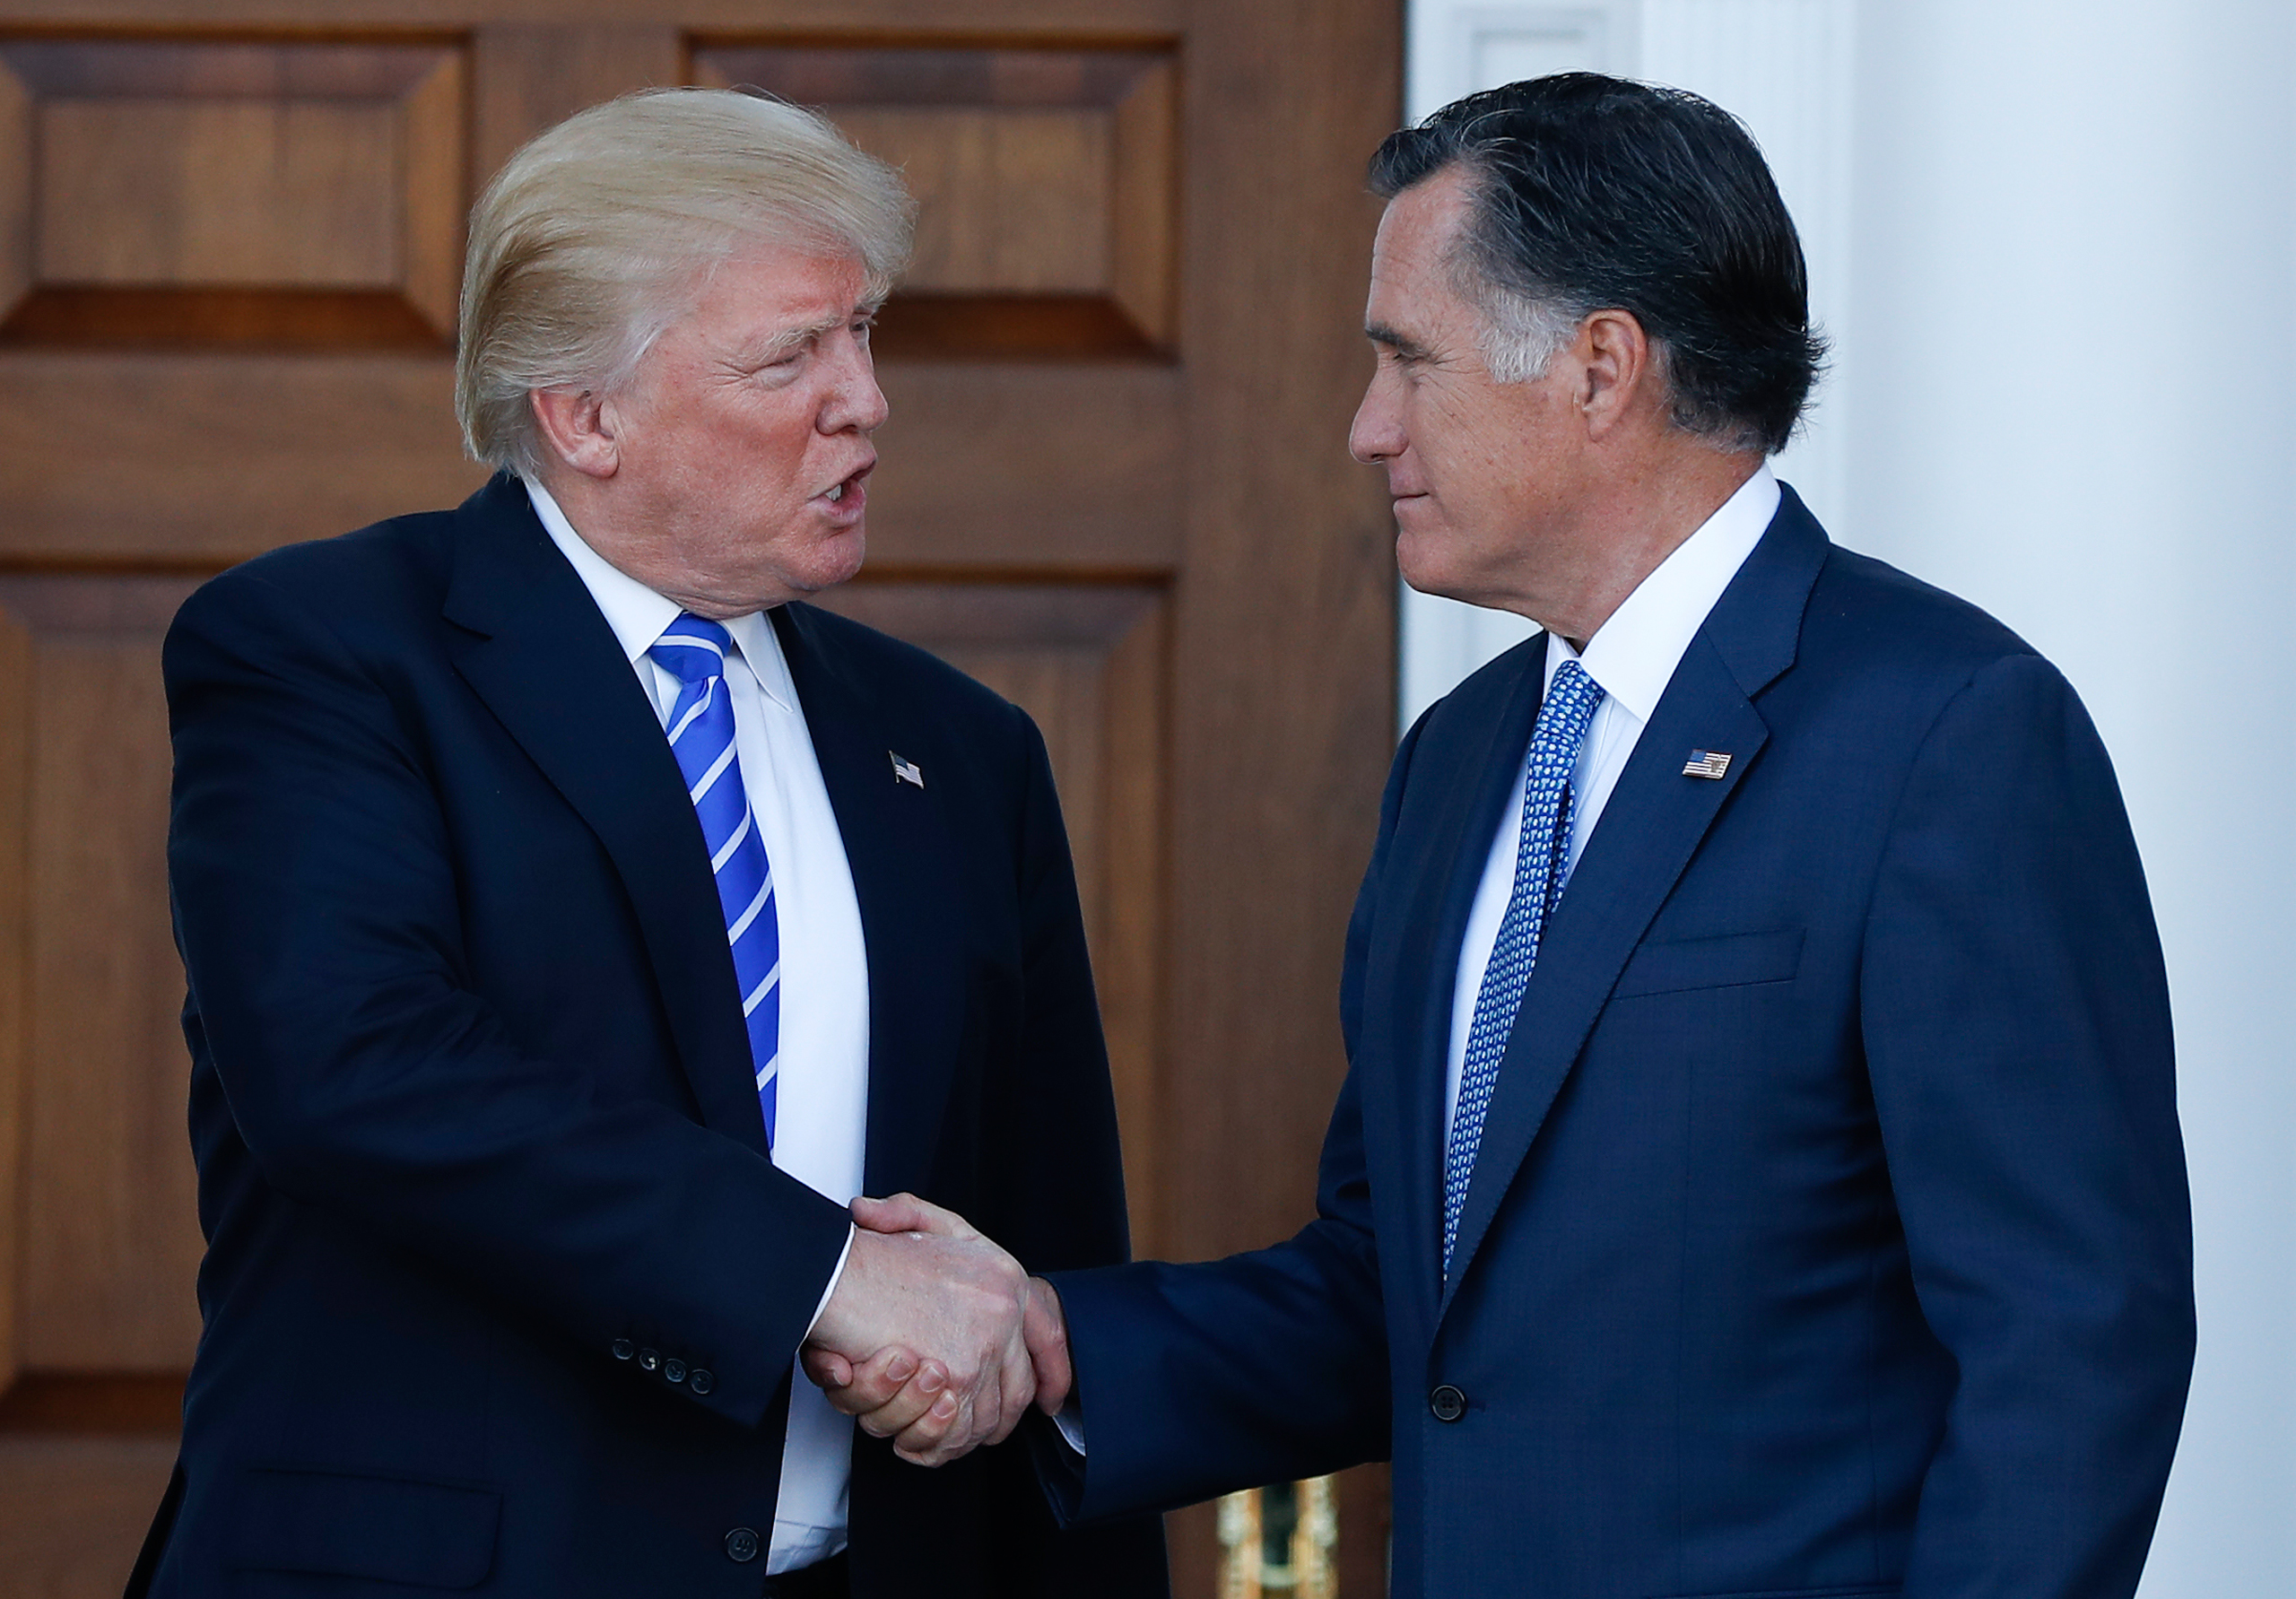 President-elect Donald Trump and Mitt Romney shake hands as Romney leaves Trump National Golf Club Bedminster in Bedminster, N.J., on Nov. 19, 2016.